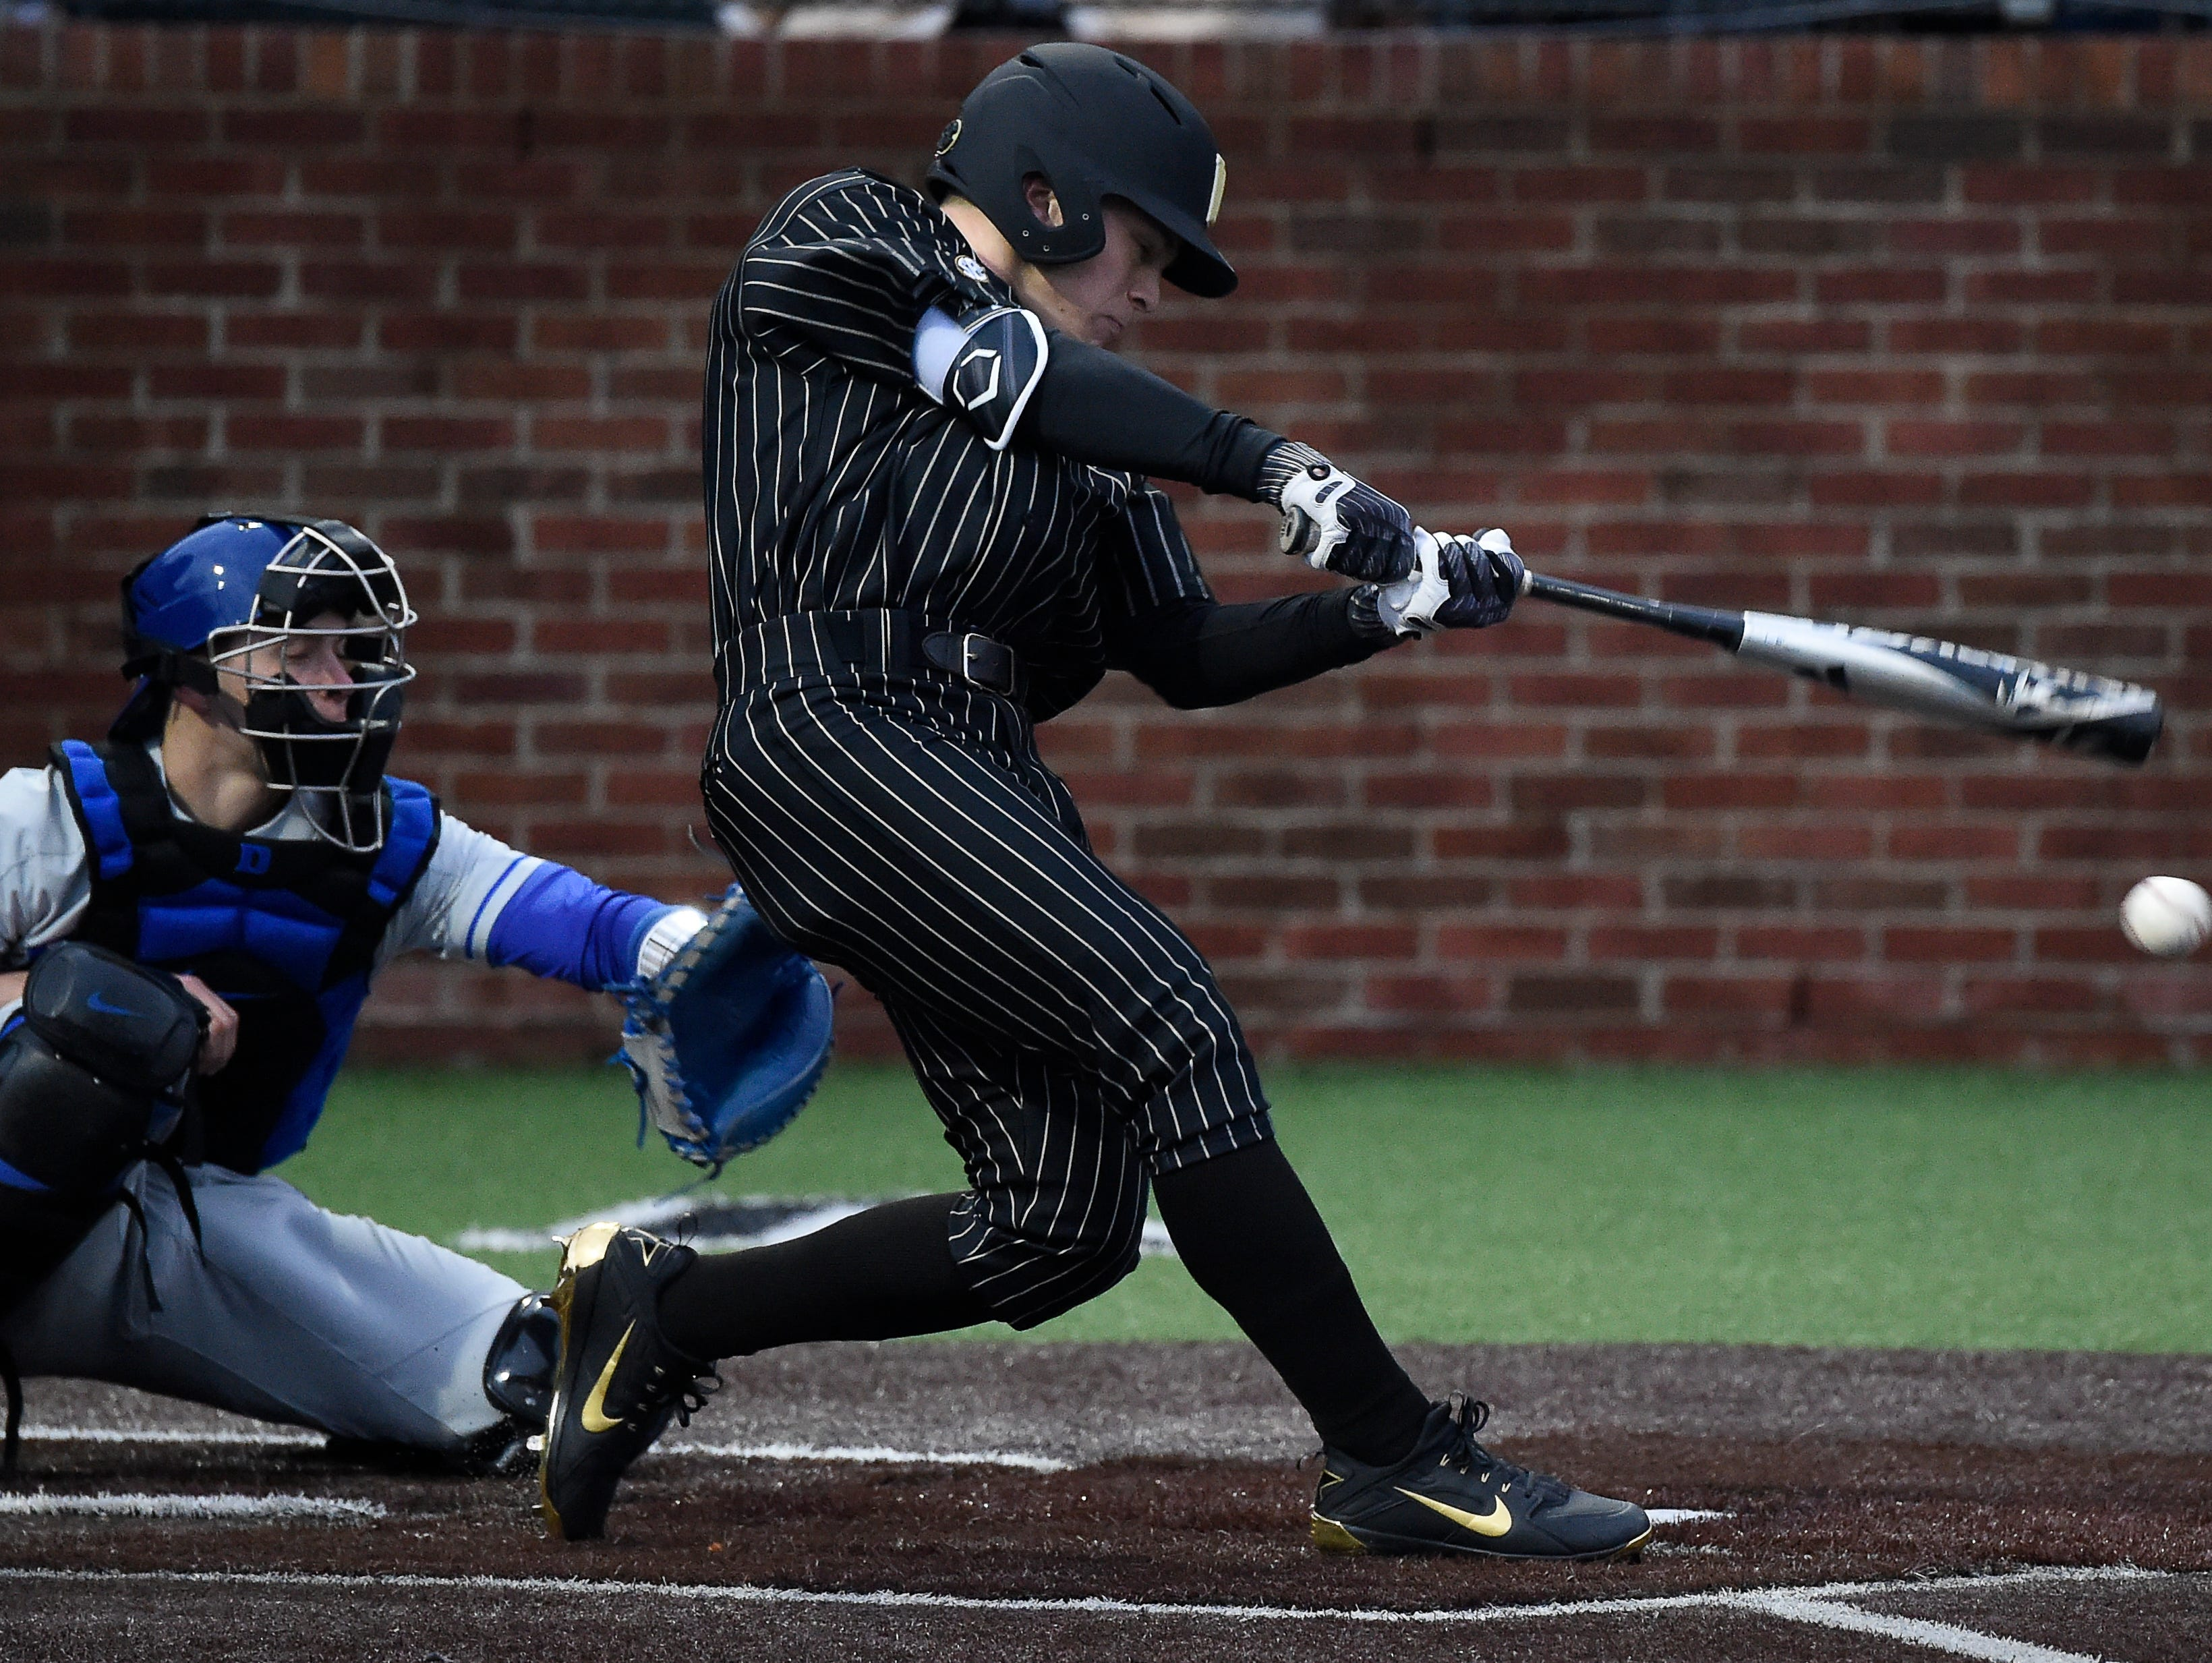 Vanderbilt catcher Philip Clarke (5) hits the ball during the game against Duke at Hawkins Field Friday, Feb. 16, 2018 in Nashville, Tenn.